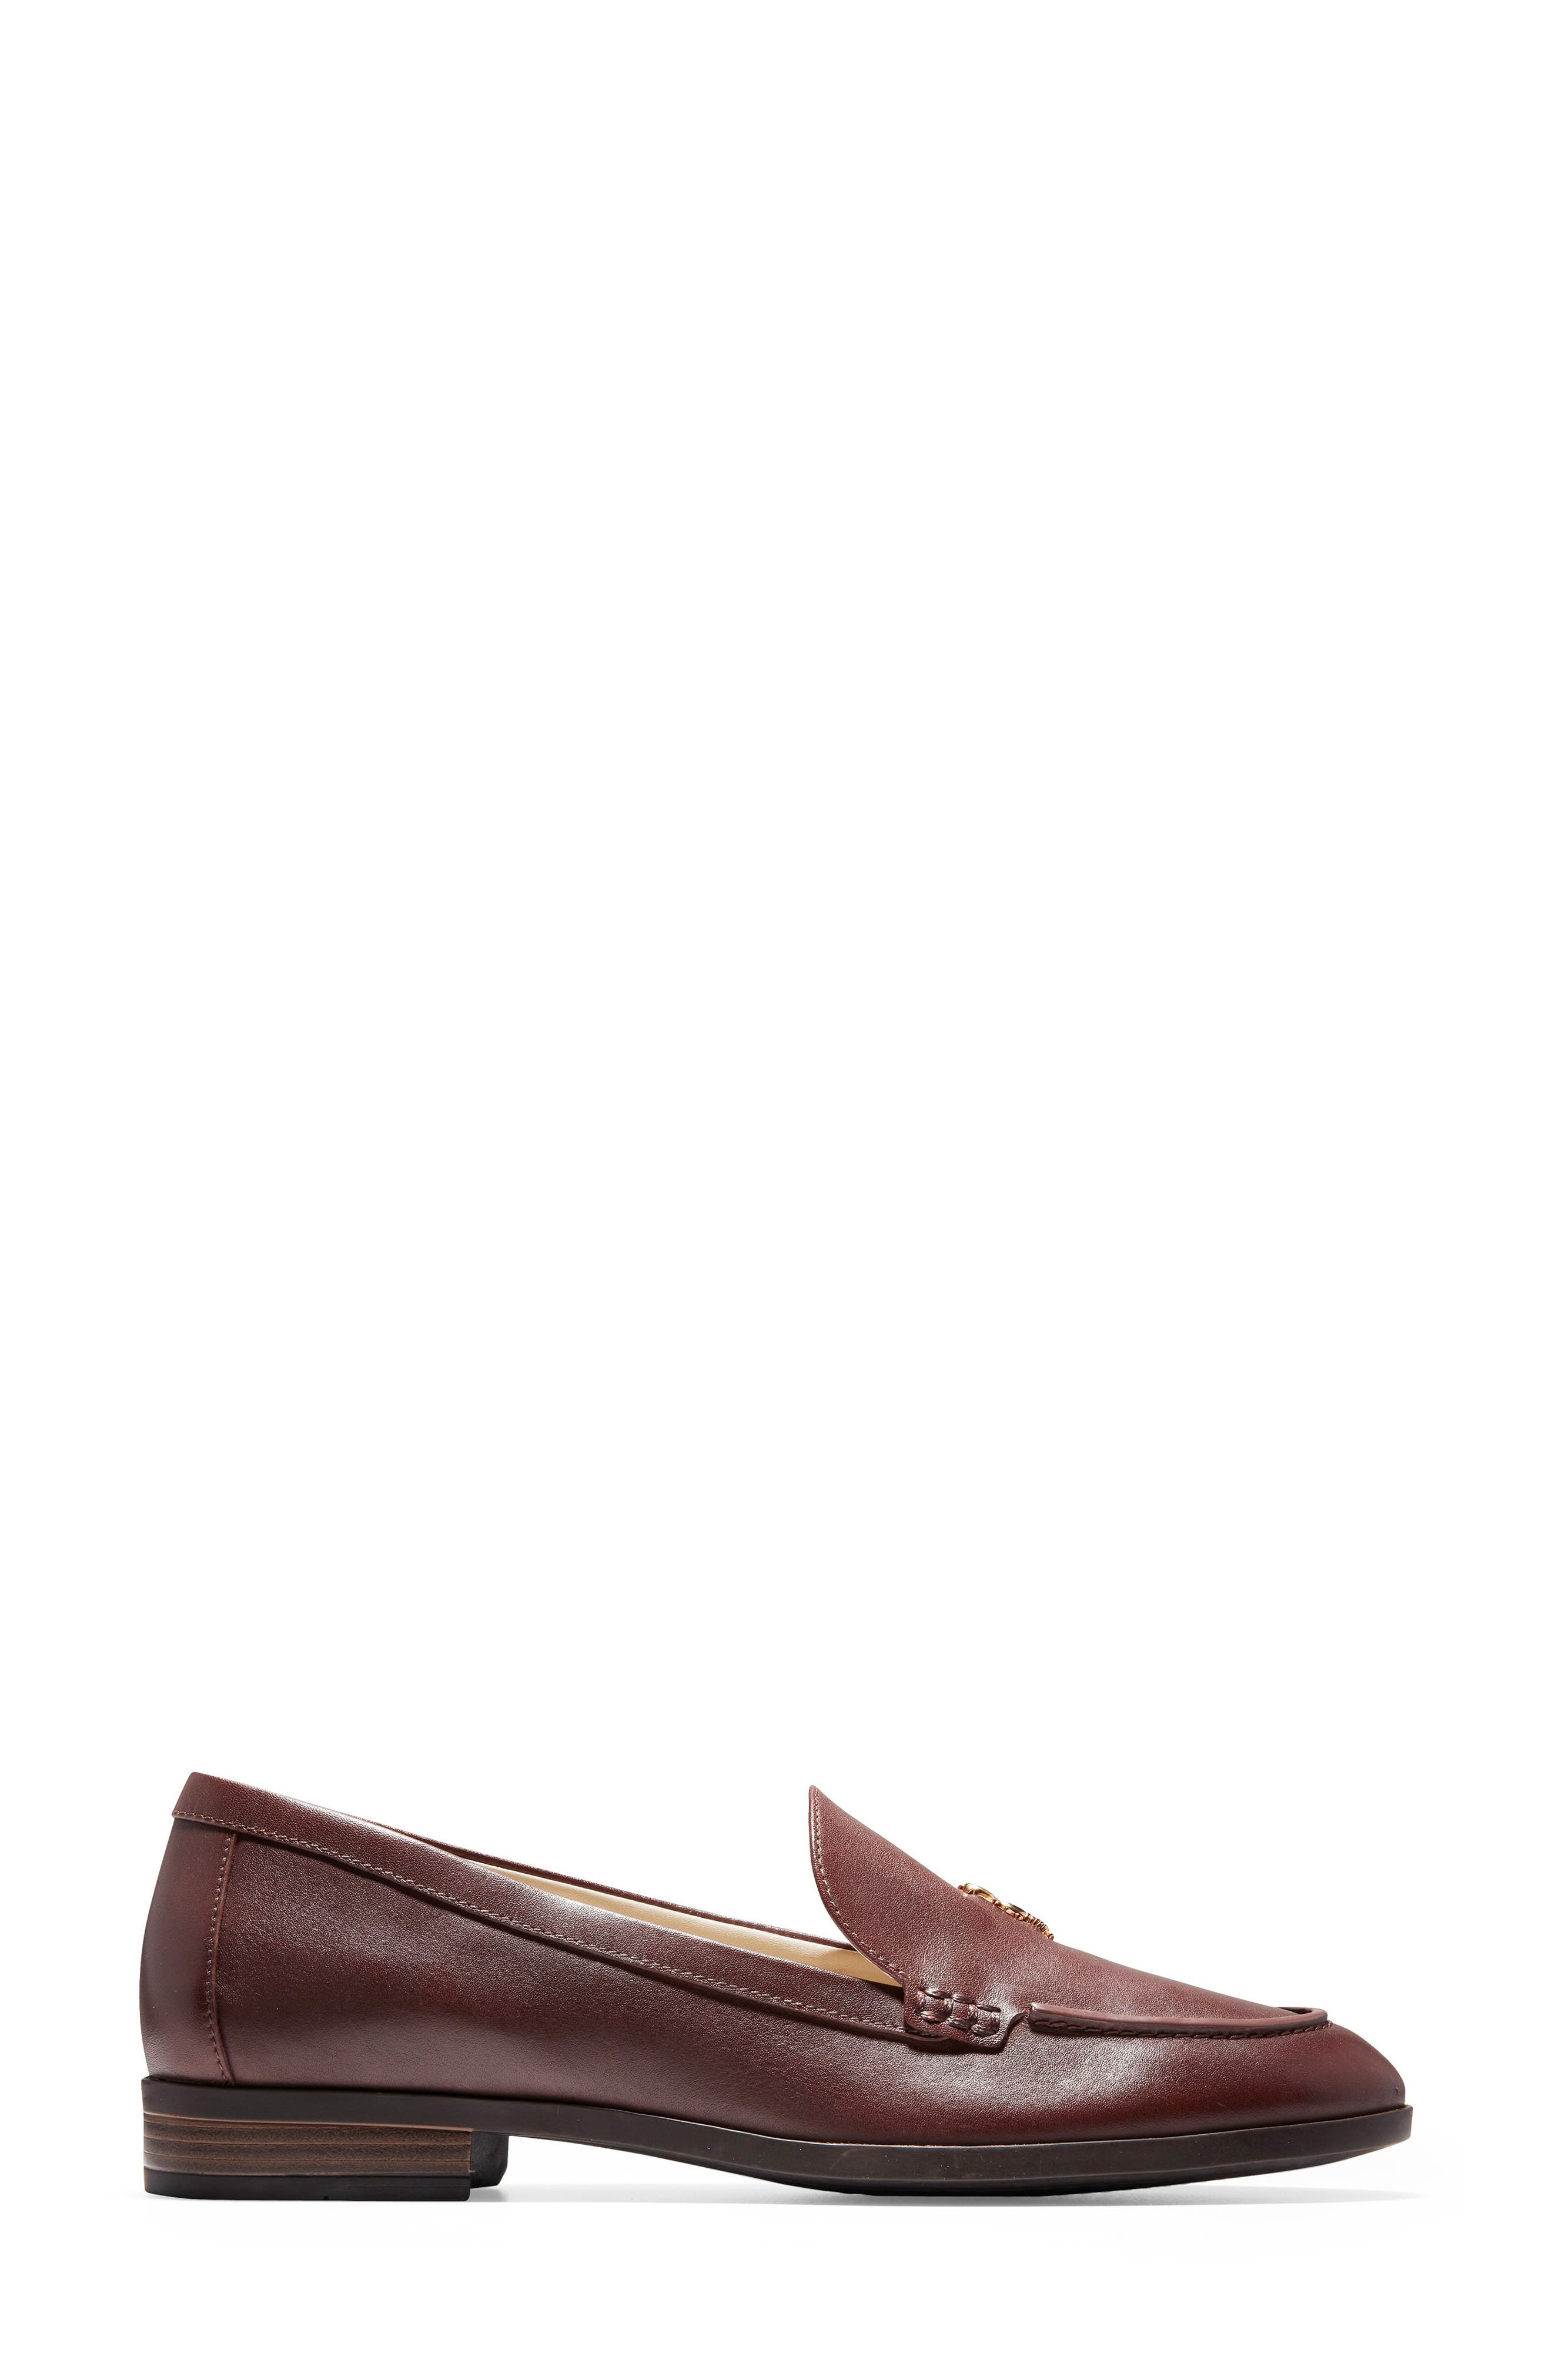 Pinch Lobster Loafer,                             Alternate thumbnail 15, color,